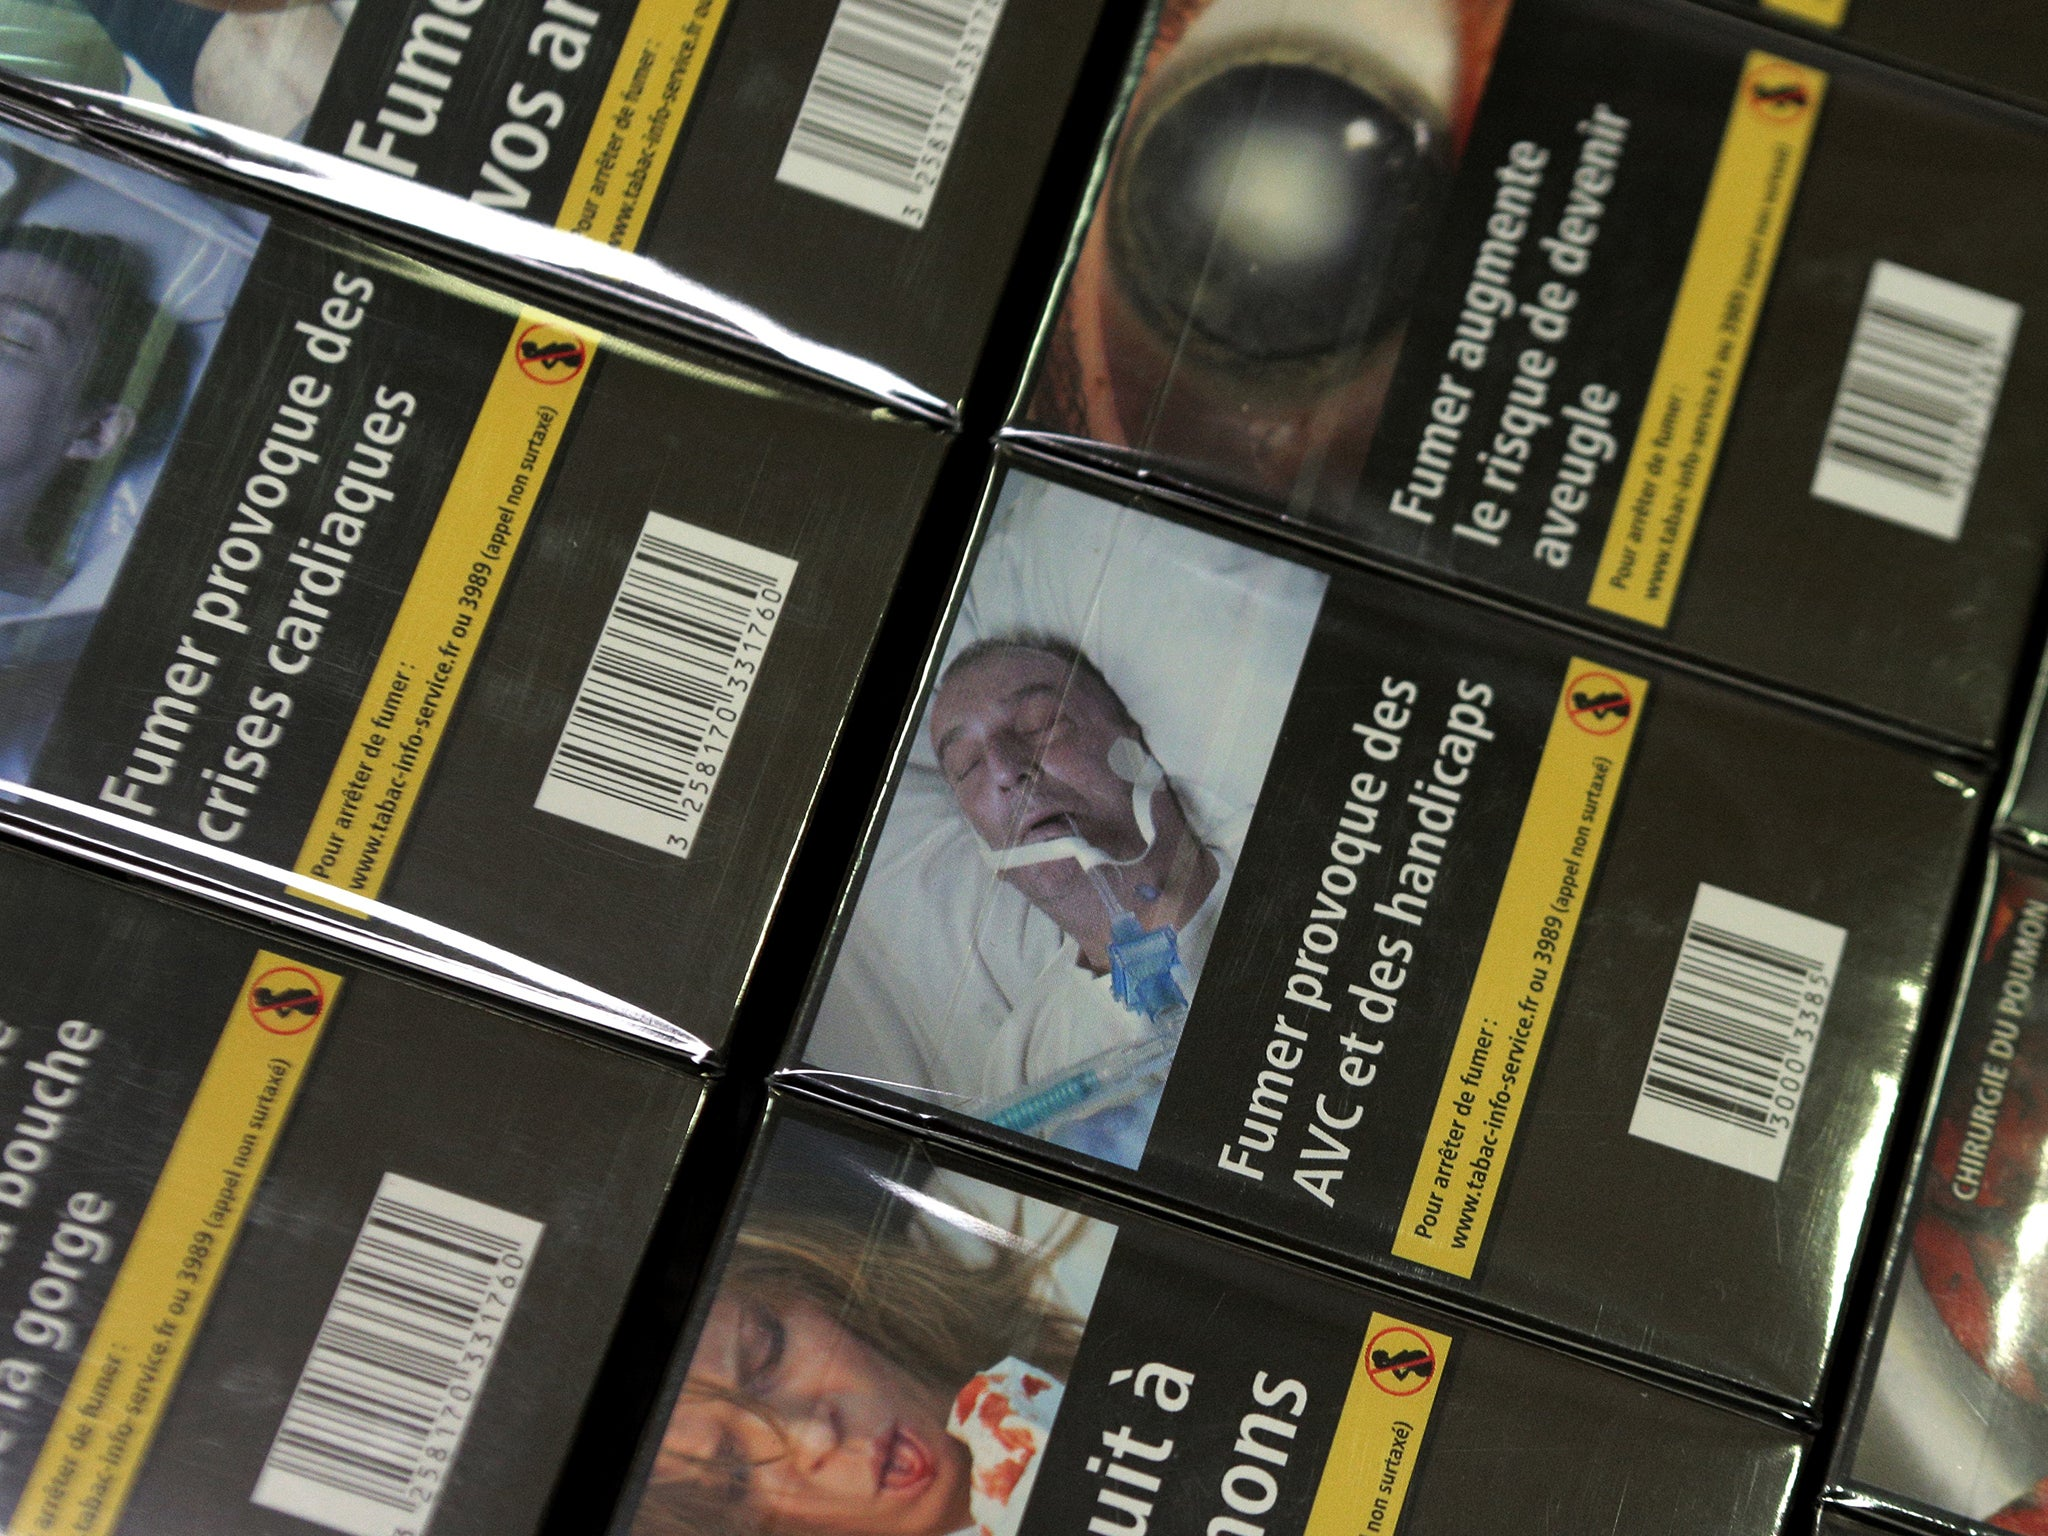 cigarettes - latest news, breaking stories and comment - The Independent